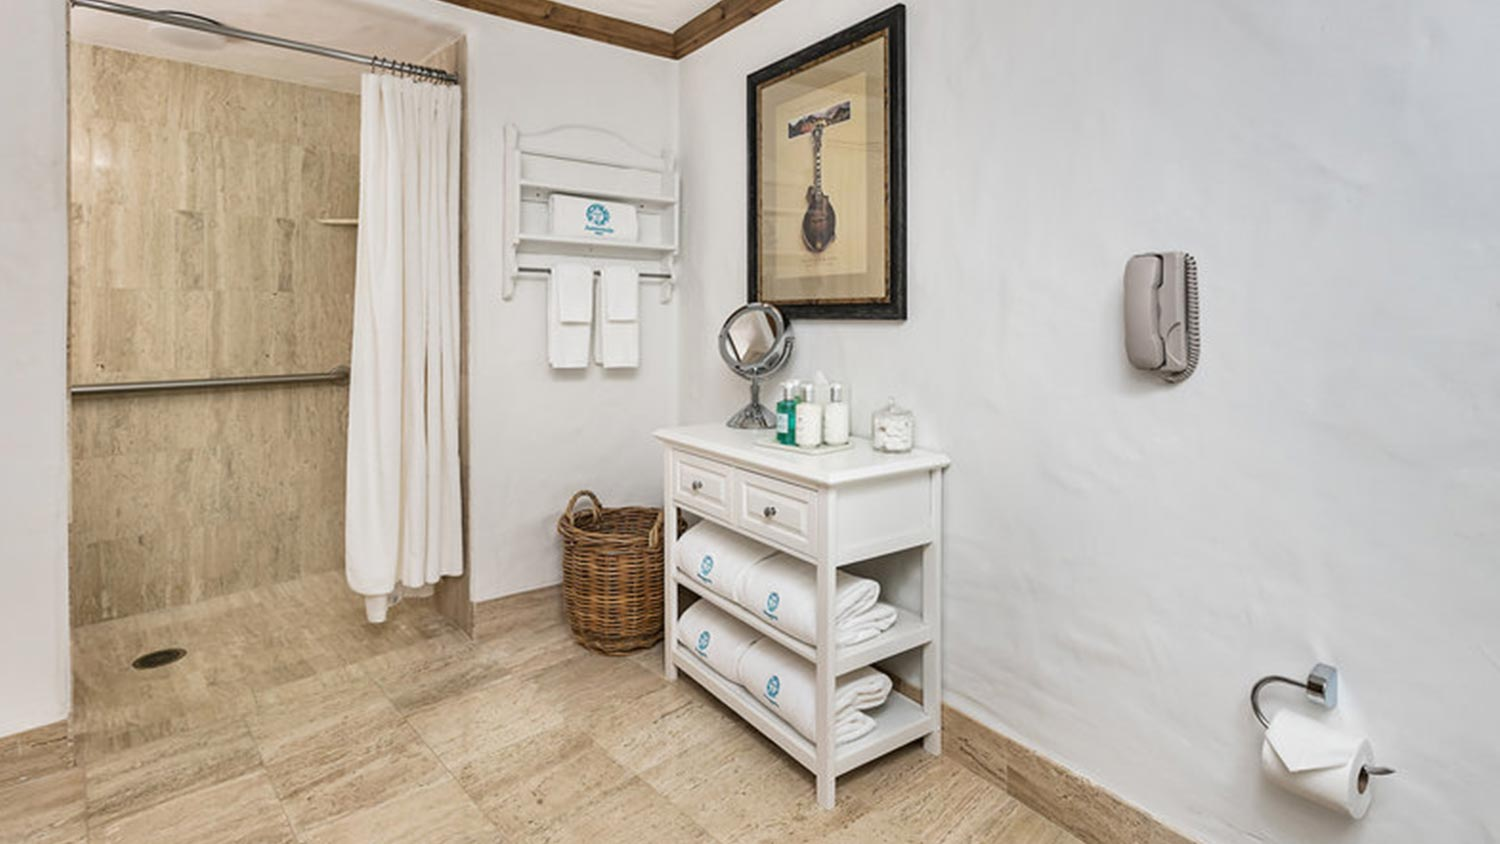 Bathroom with shower and small stand with drawers and towels underneath